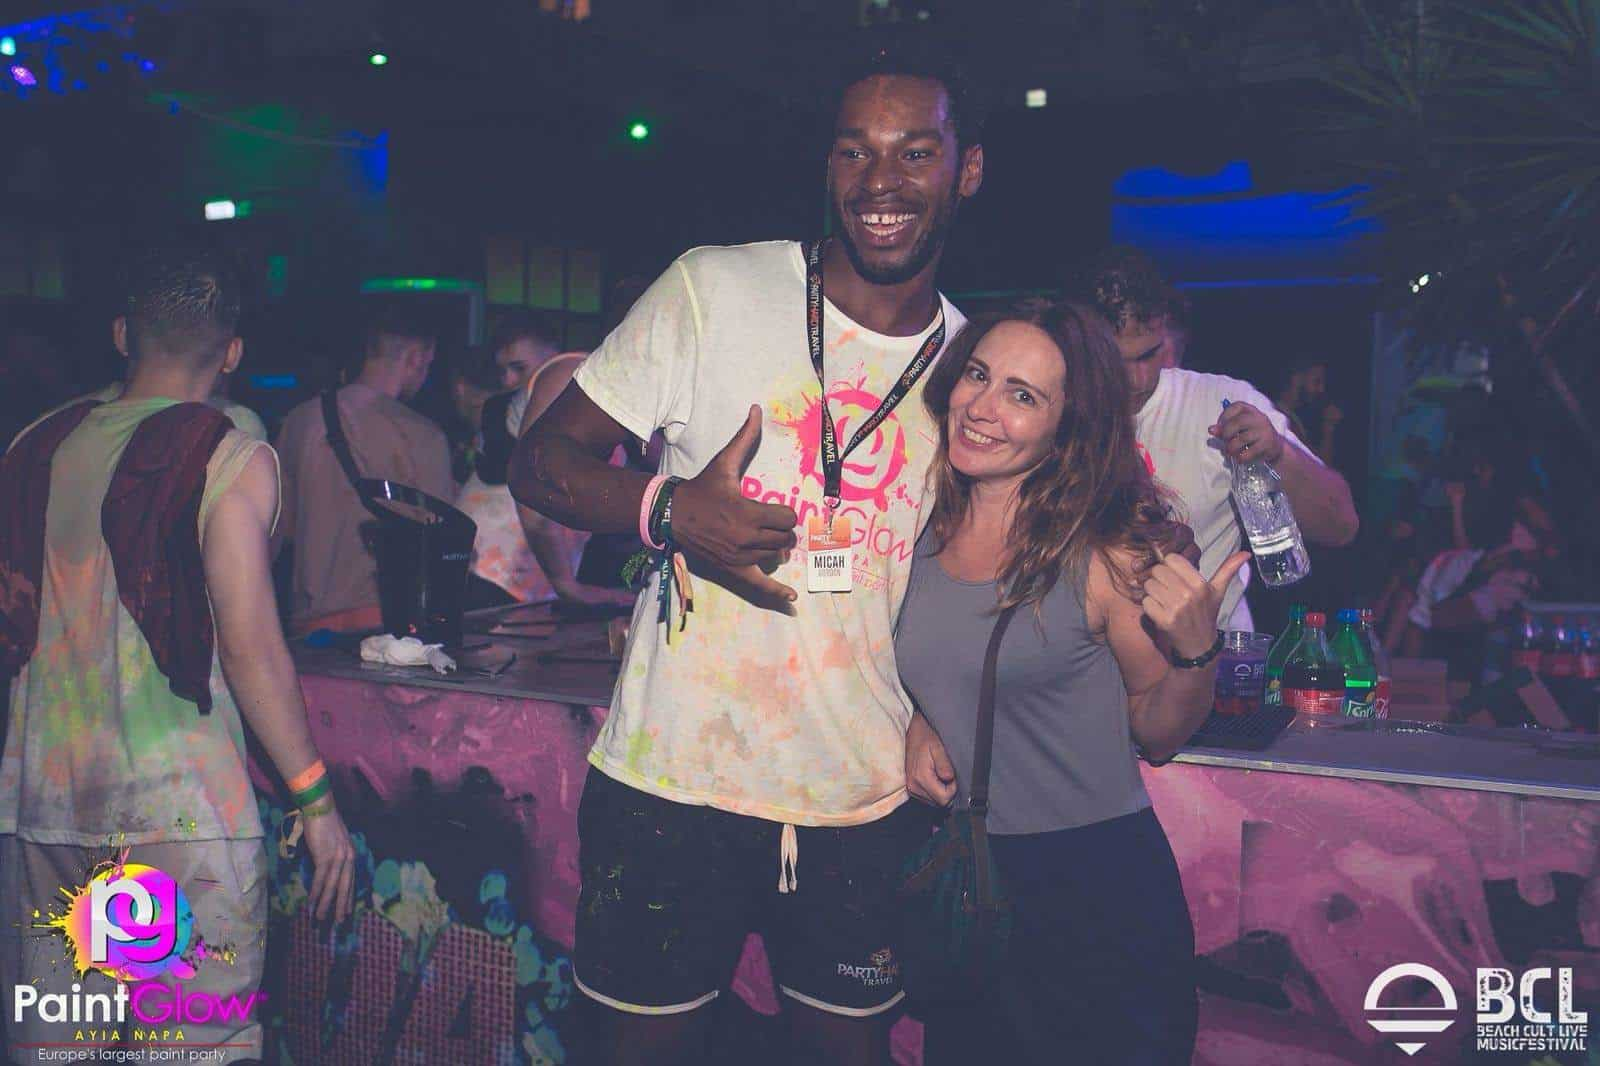 Posing with the DJ at Paint Glow Party